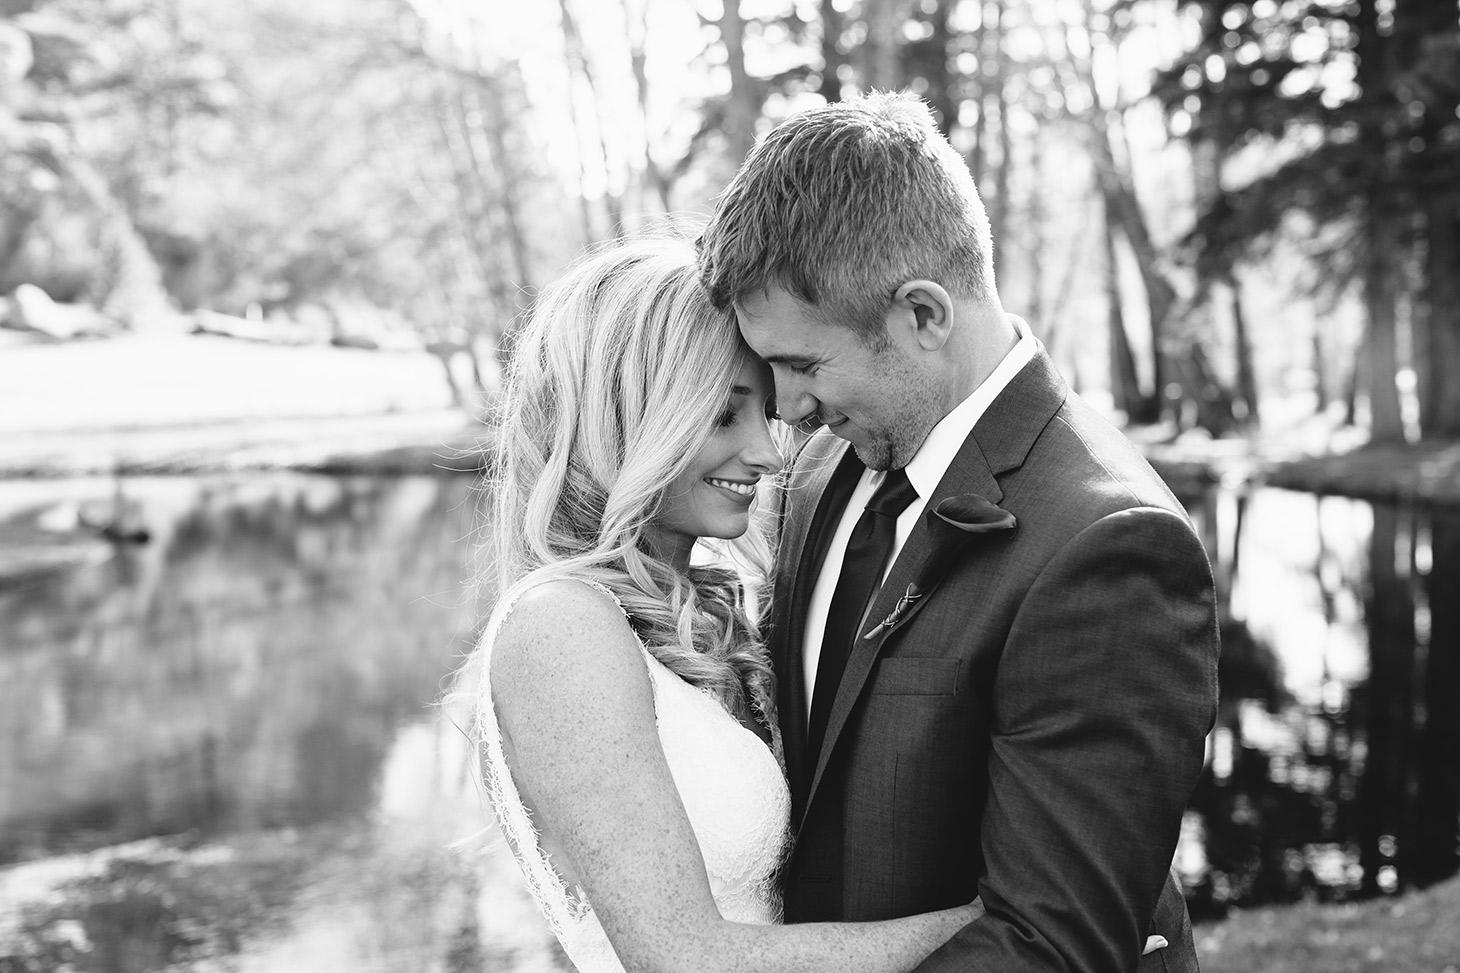 Megan-Newton-Photography-Best-Wedding-Photos-2015-069